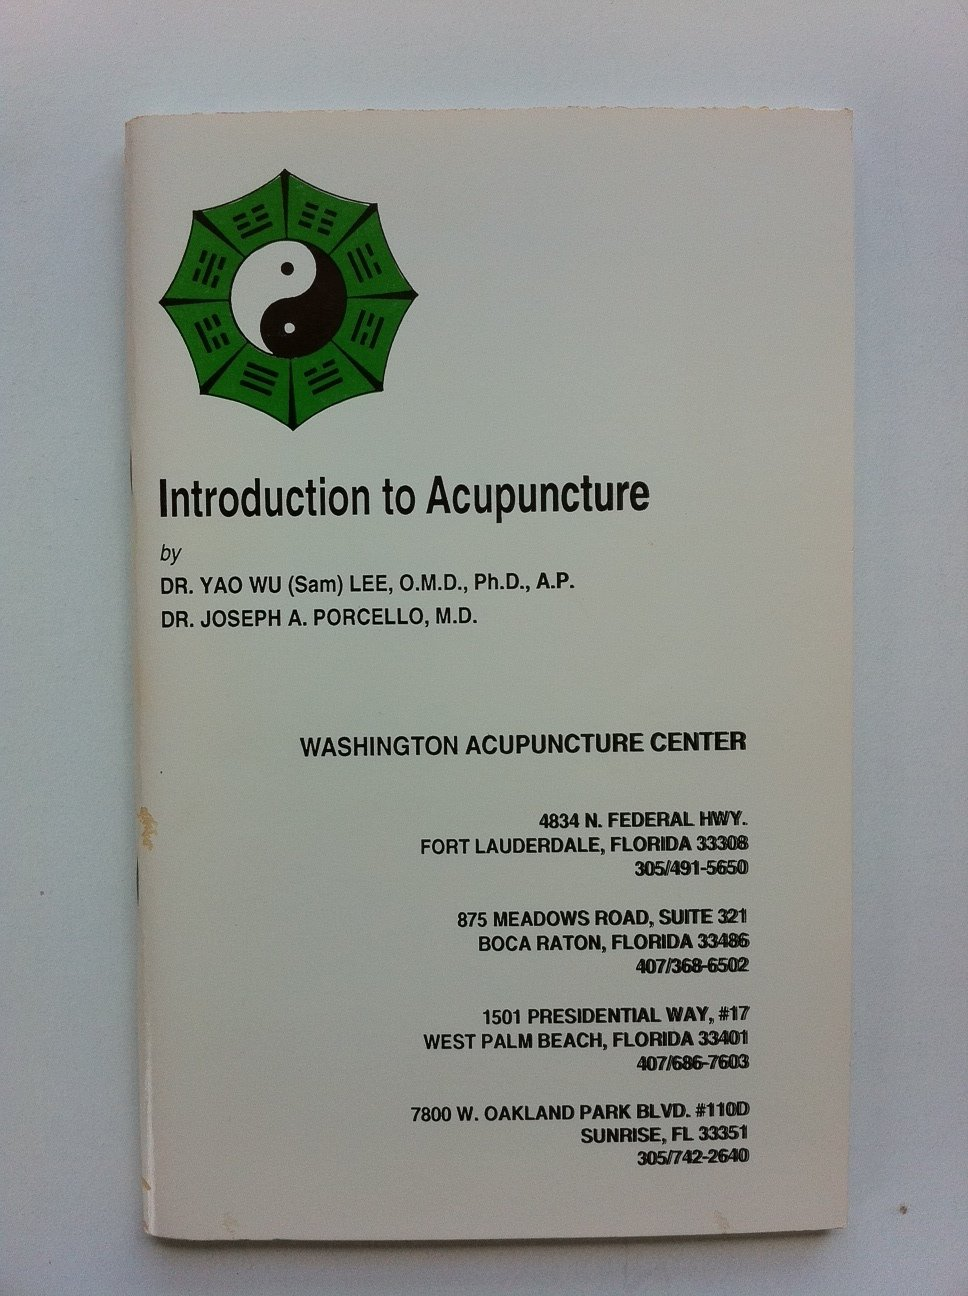 introduction to acupuncture louise wensel 9780912760353 amazon